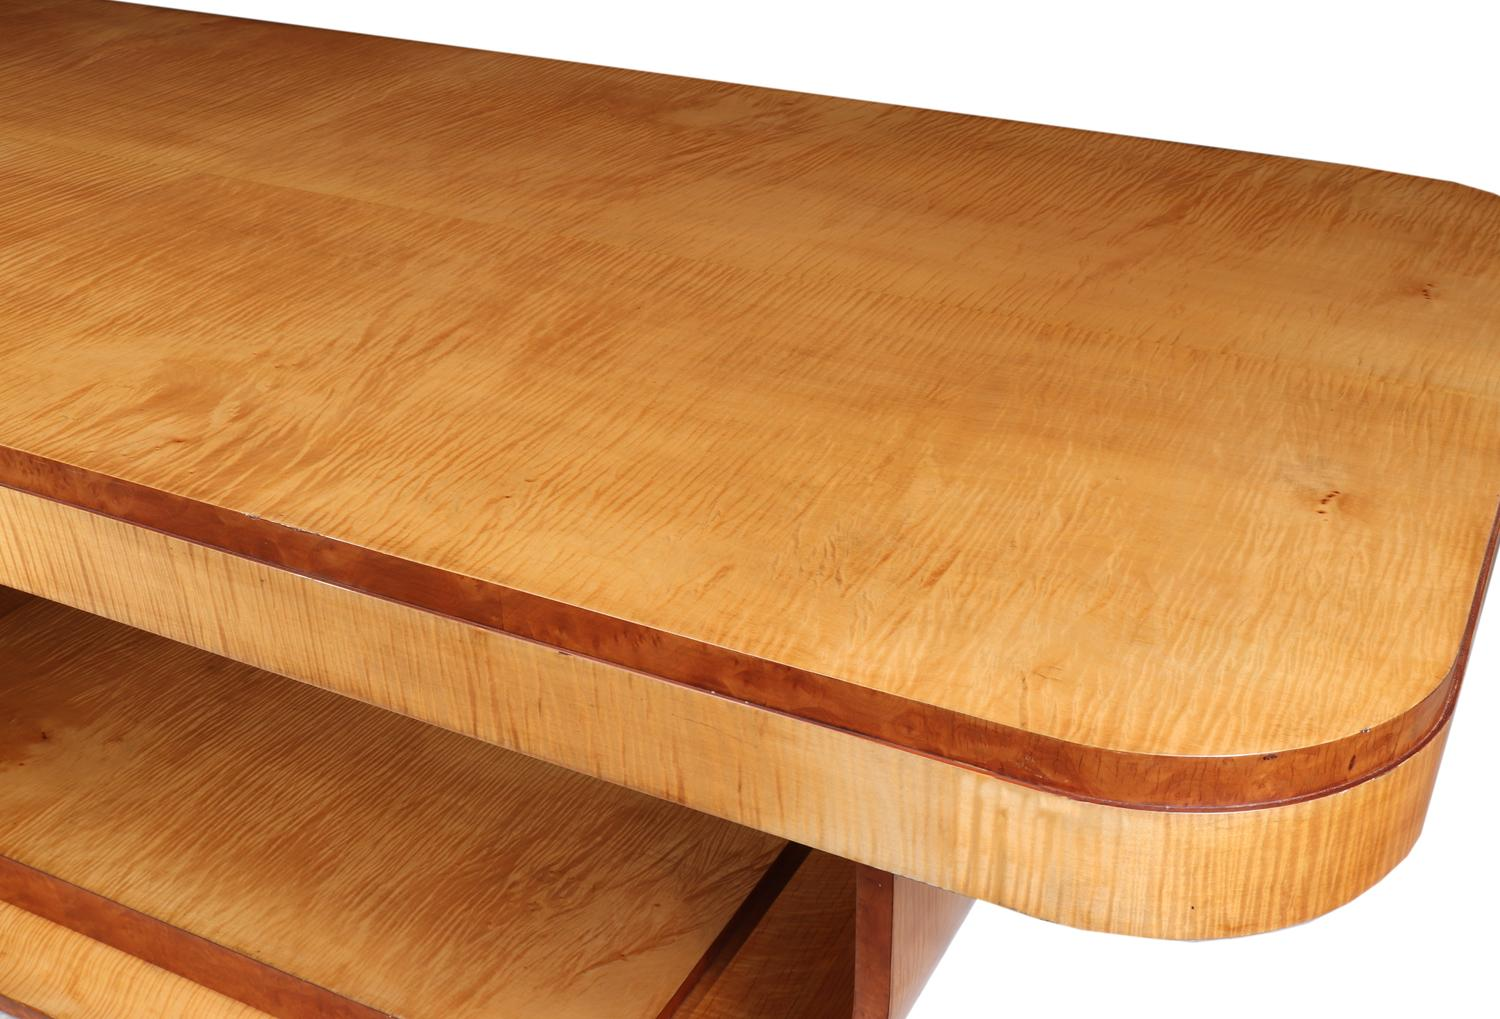 Sycamore Wood Table